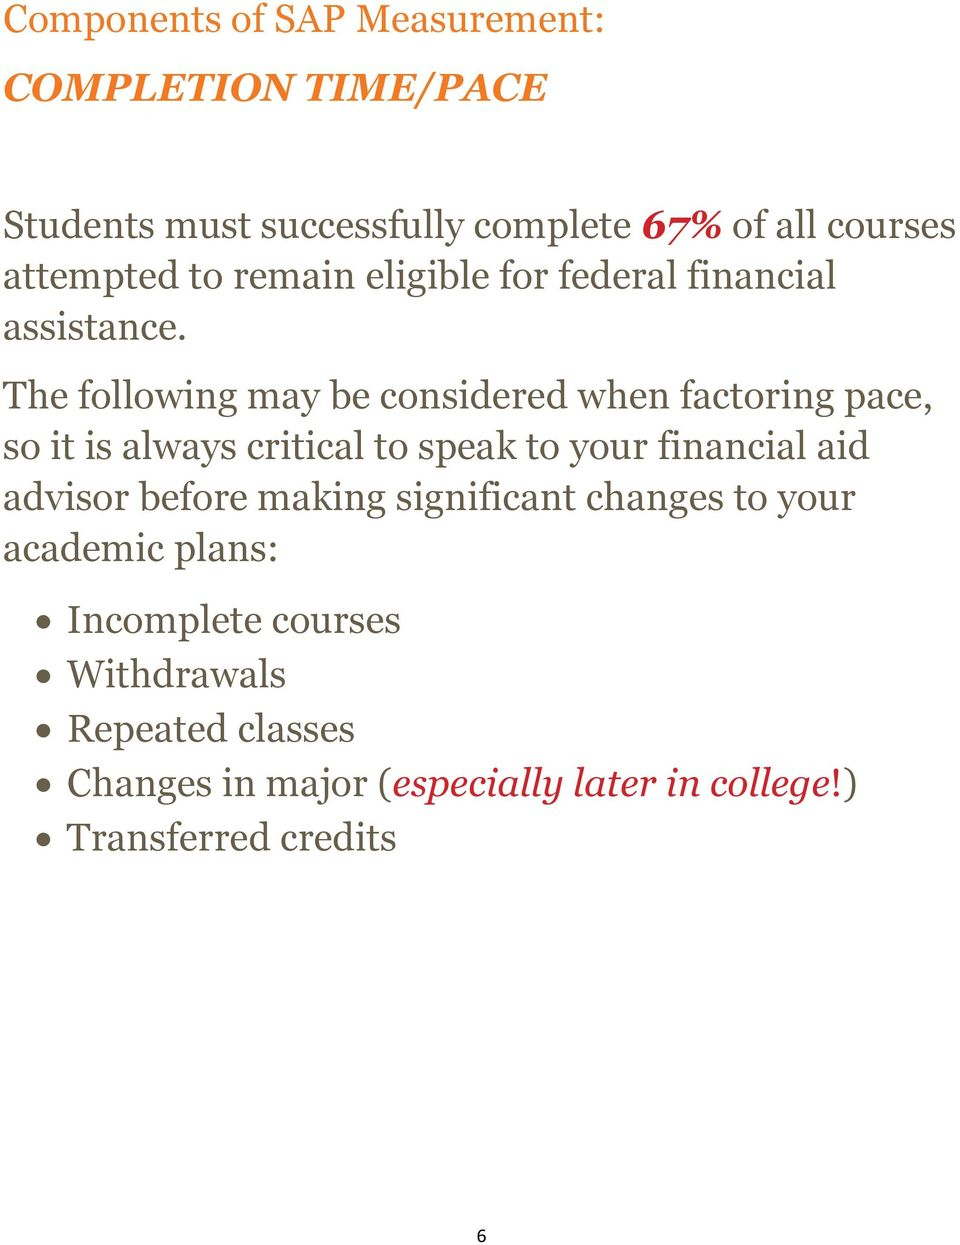 The following may be considered when factoring pace, so it is always critical to speak to your financial aid